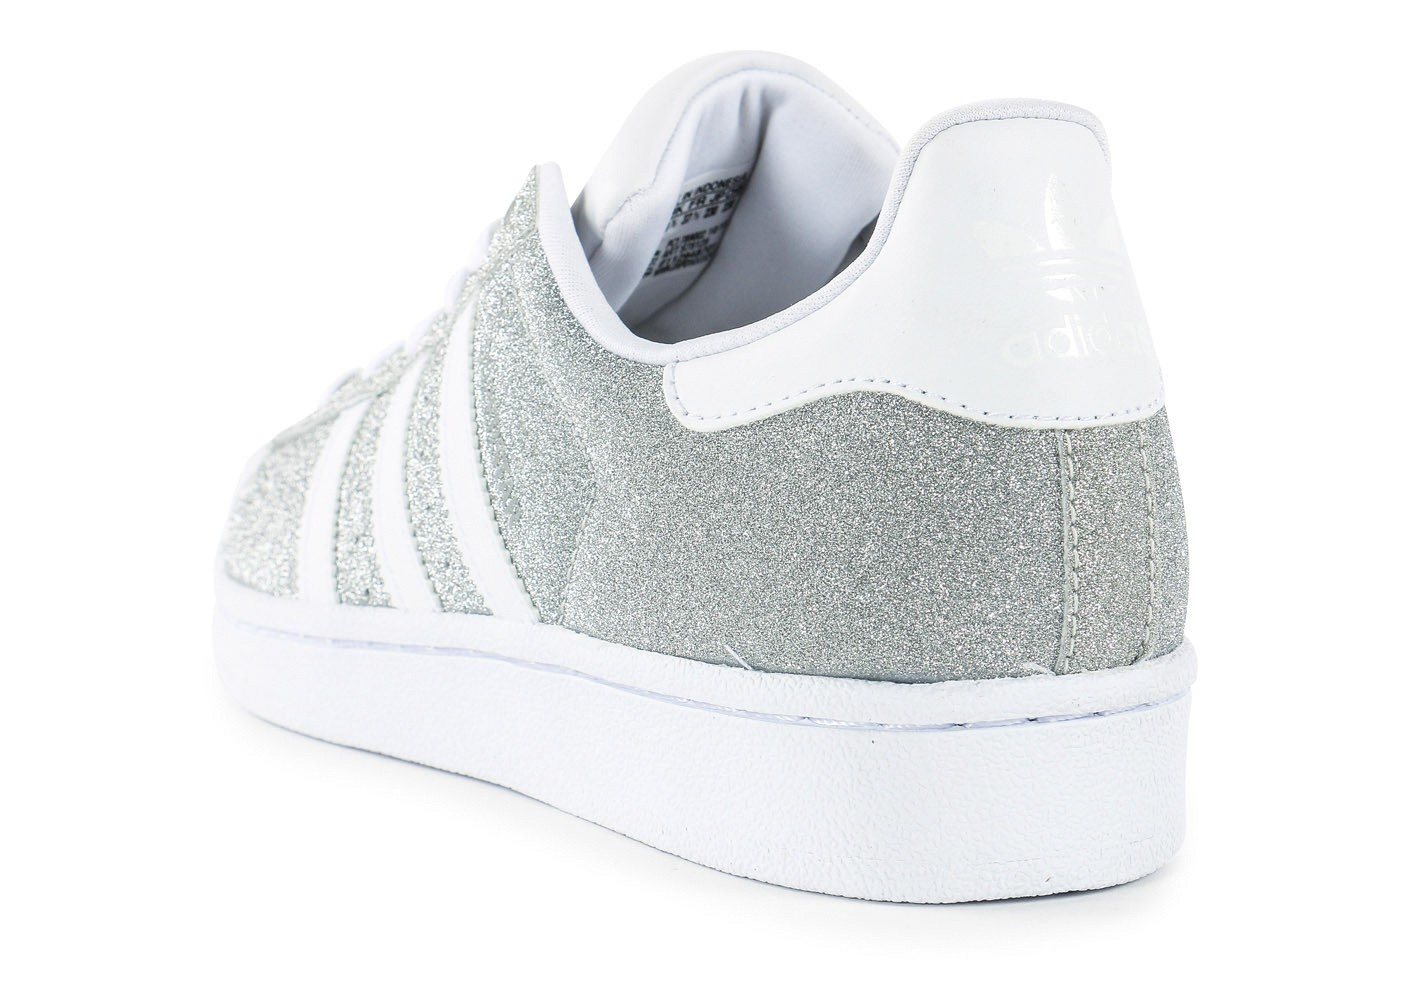 adidas superstar paillettes Off 62% - www.bashhguidelines.org